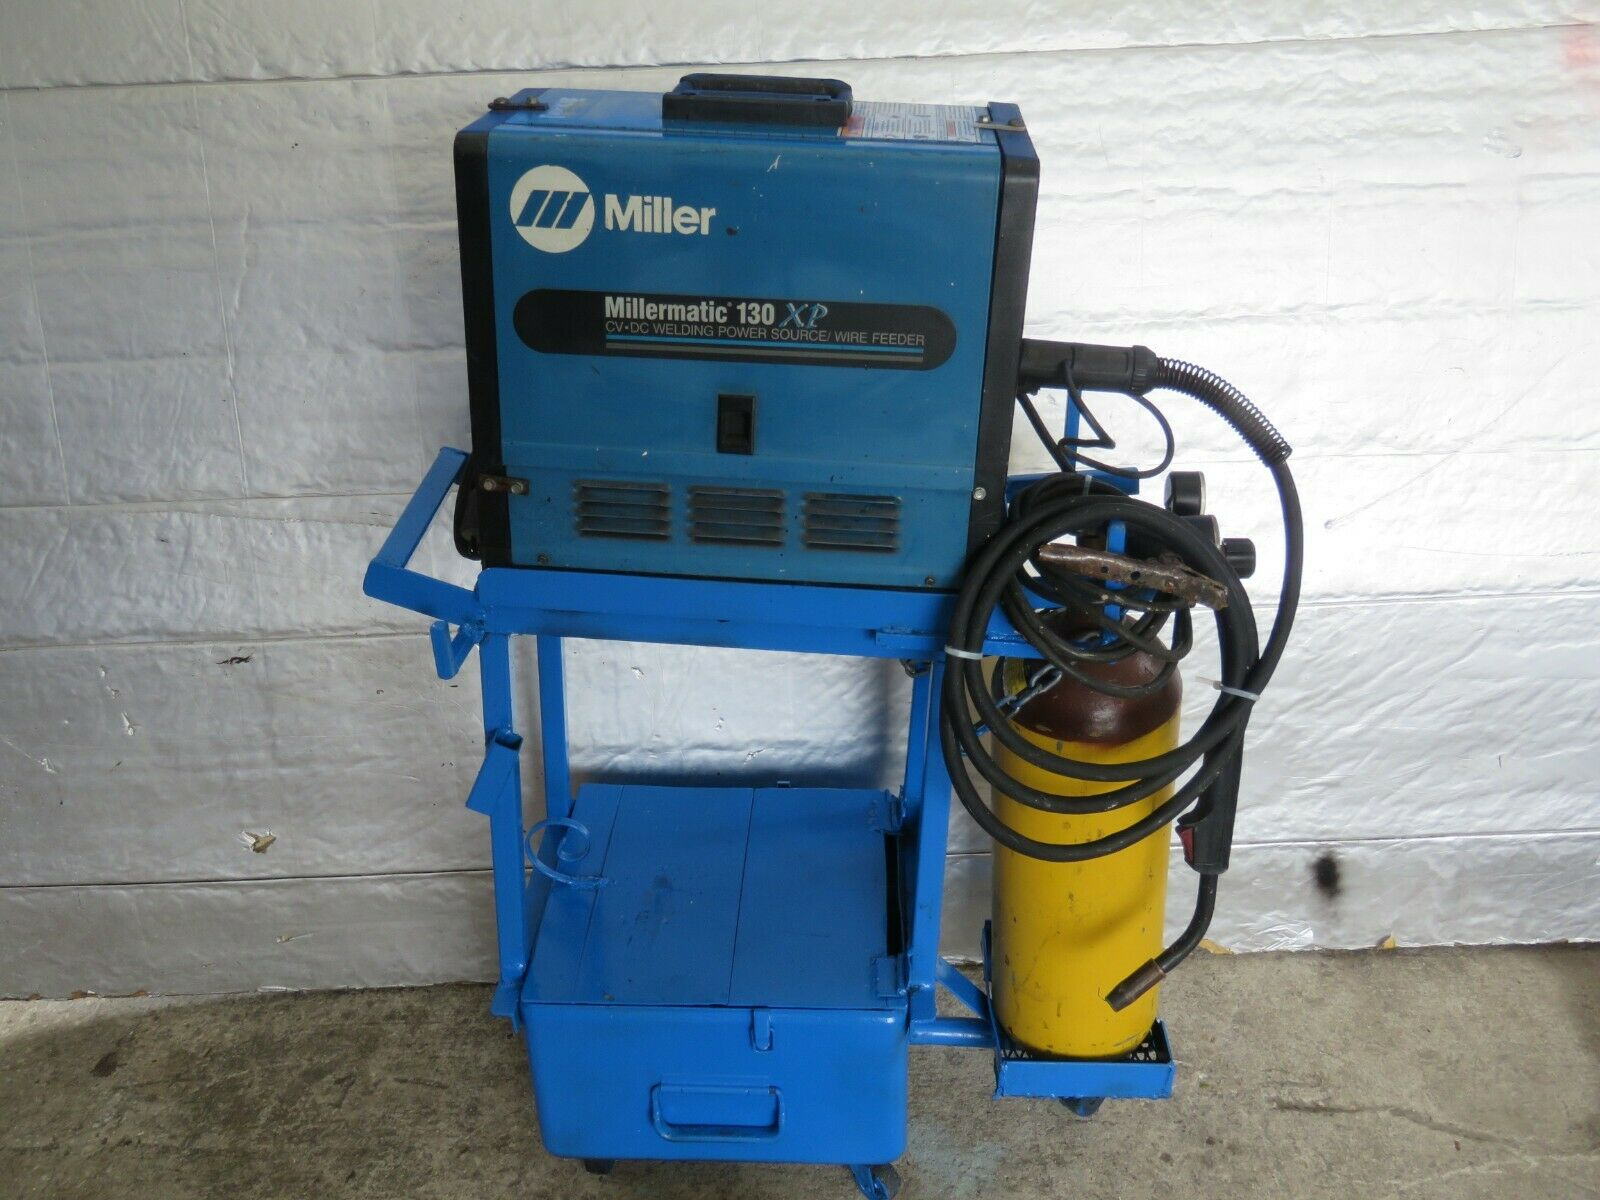 Miller Millermatic 130 MIG Welder With Stand, Gun, Spool and Accessories. Available Now for 999.99